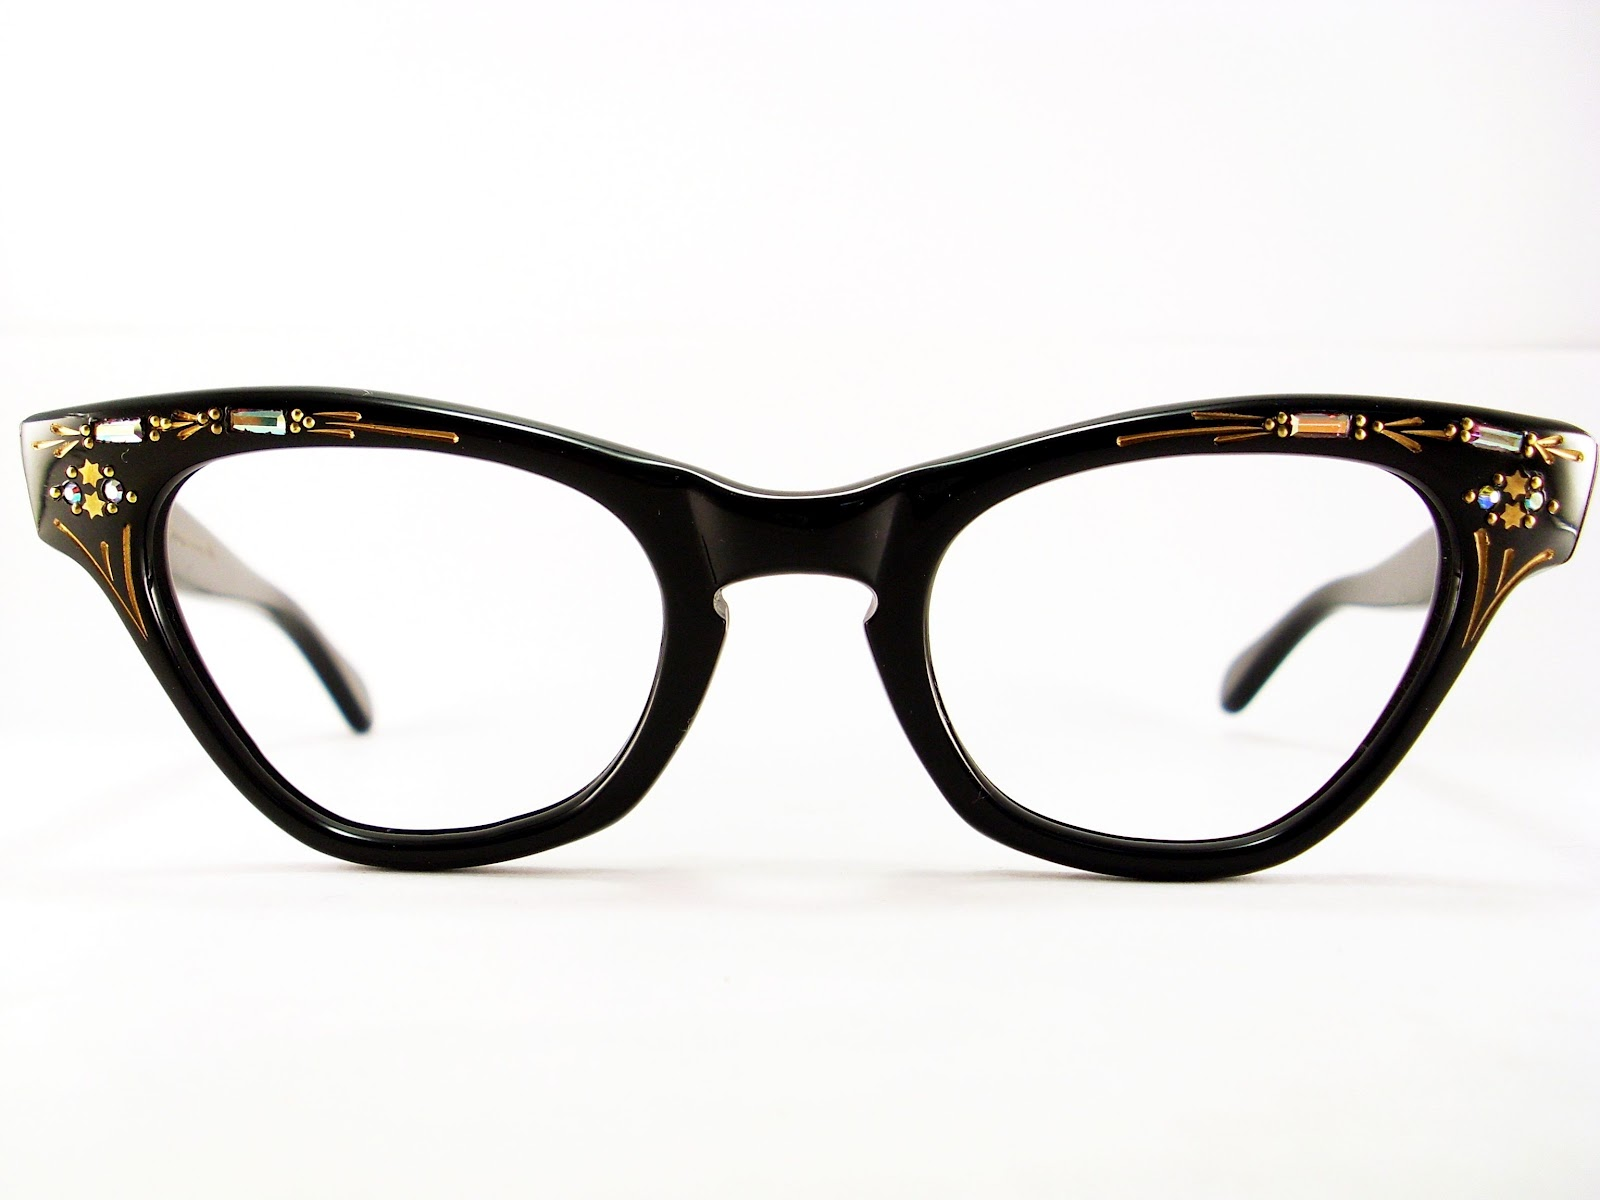 Vintage Frame Glasses 34